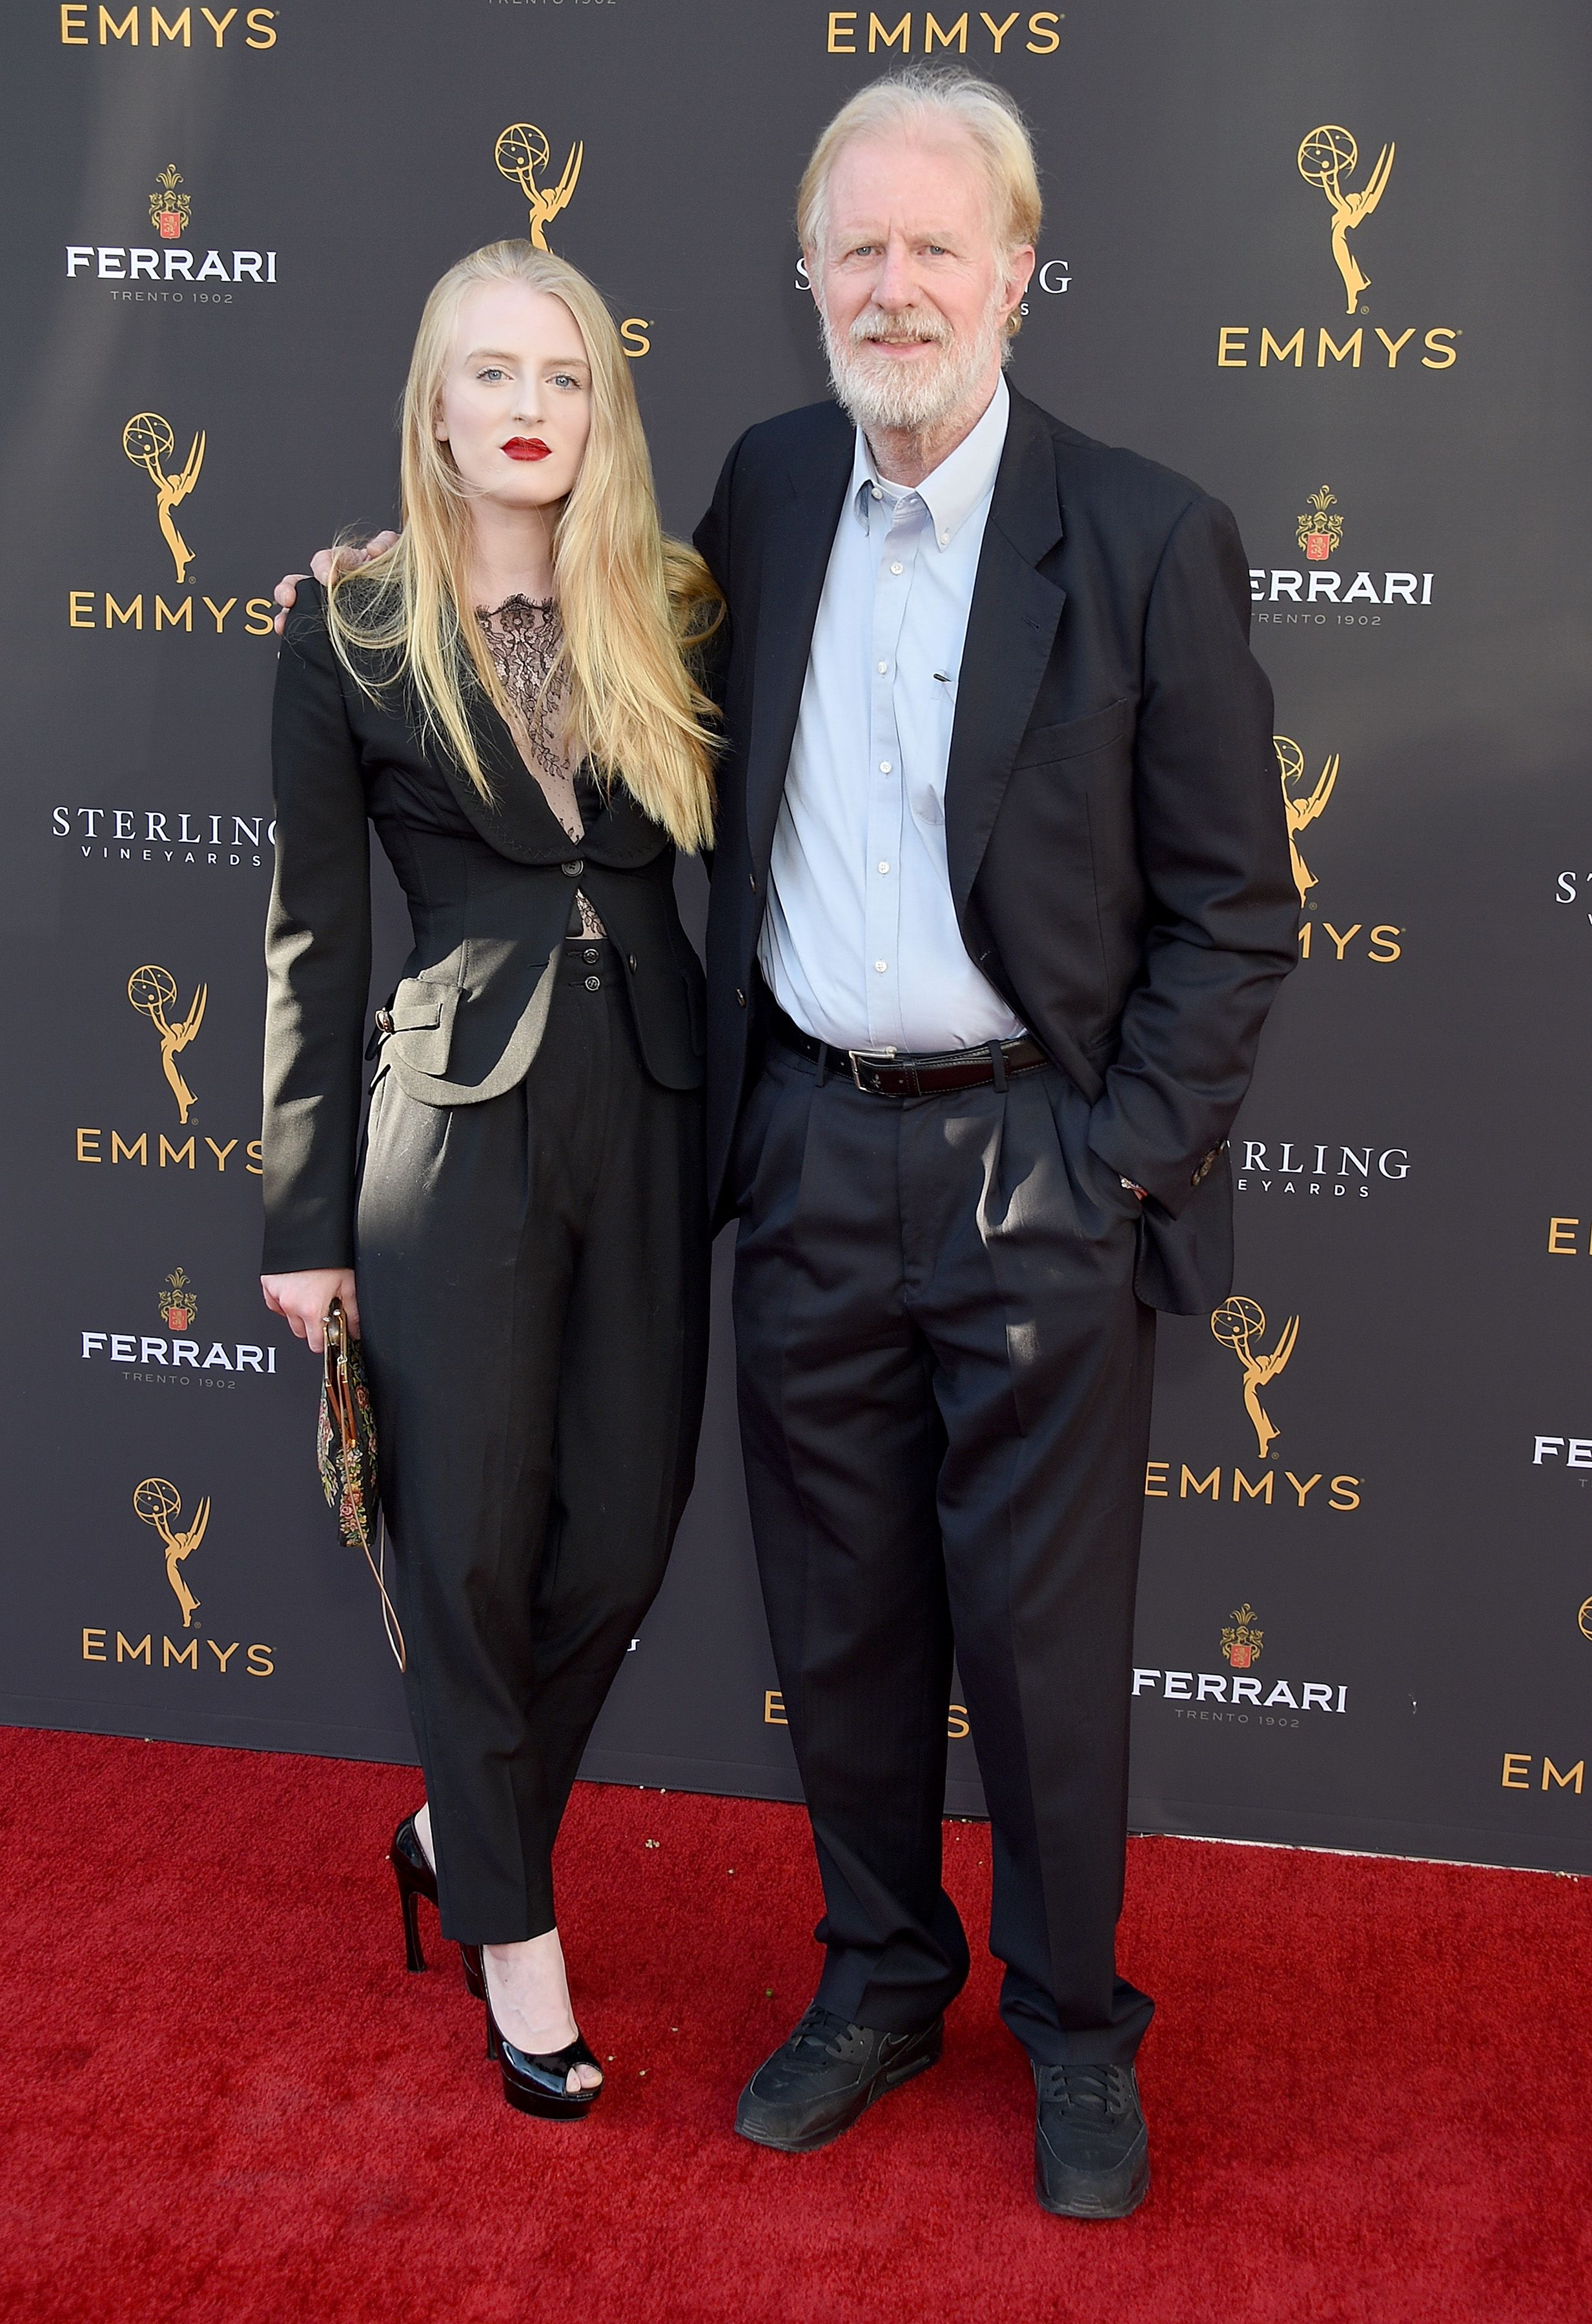 Ed Begley Jr. and daughter Hayden Carson Begley arrive at the Television Academy's Performers Peer Group Celebration at Saban Media Center on August 25, 2019 in North Hollywood, California.   Source: Getty Images